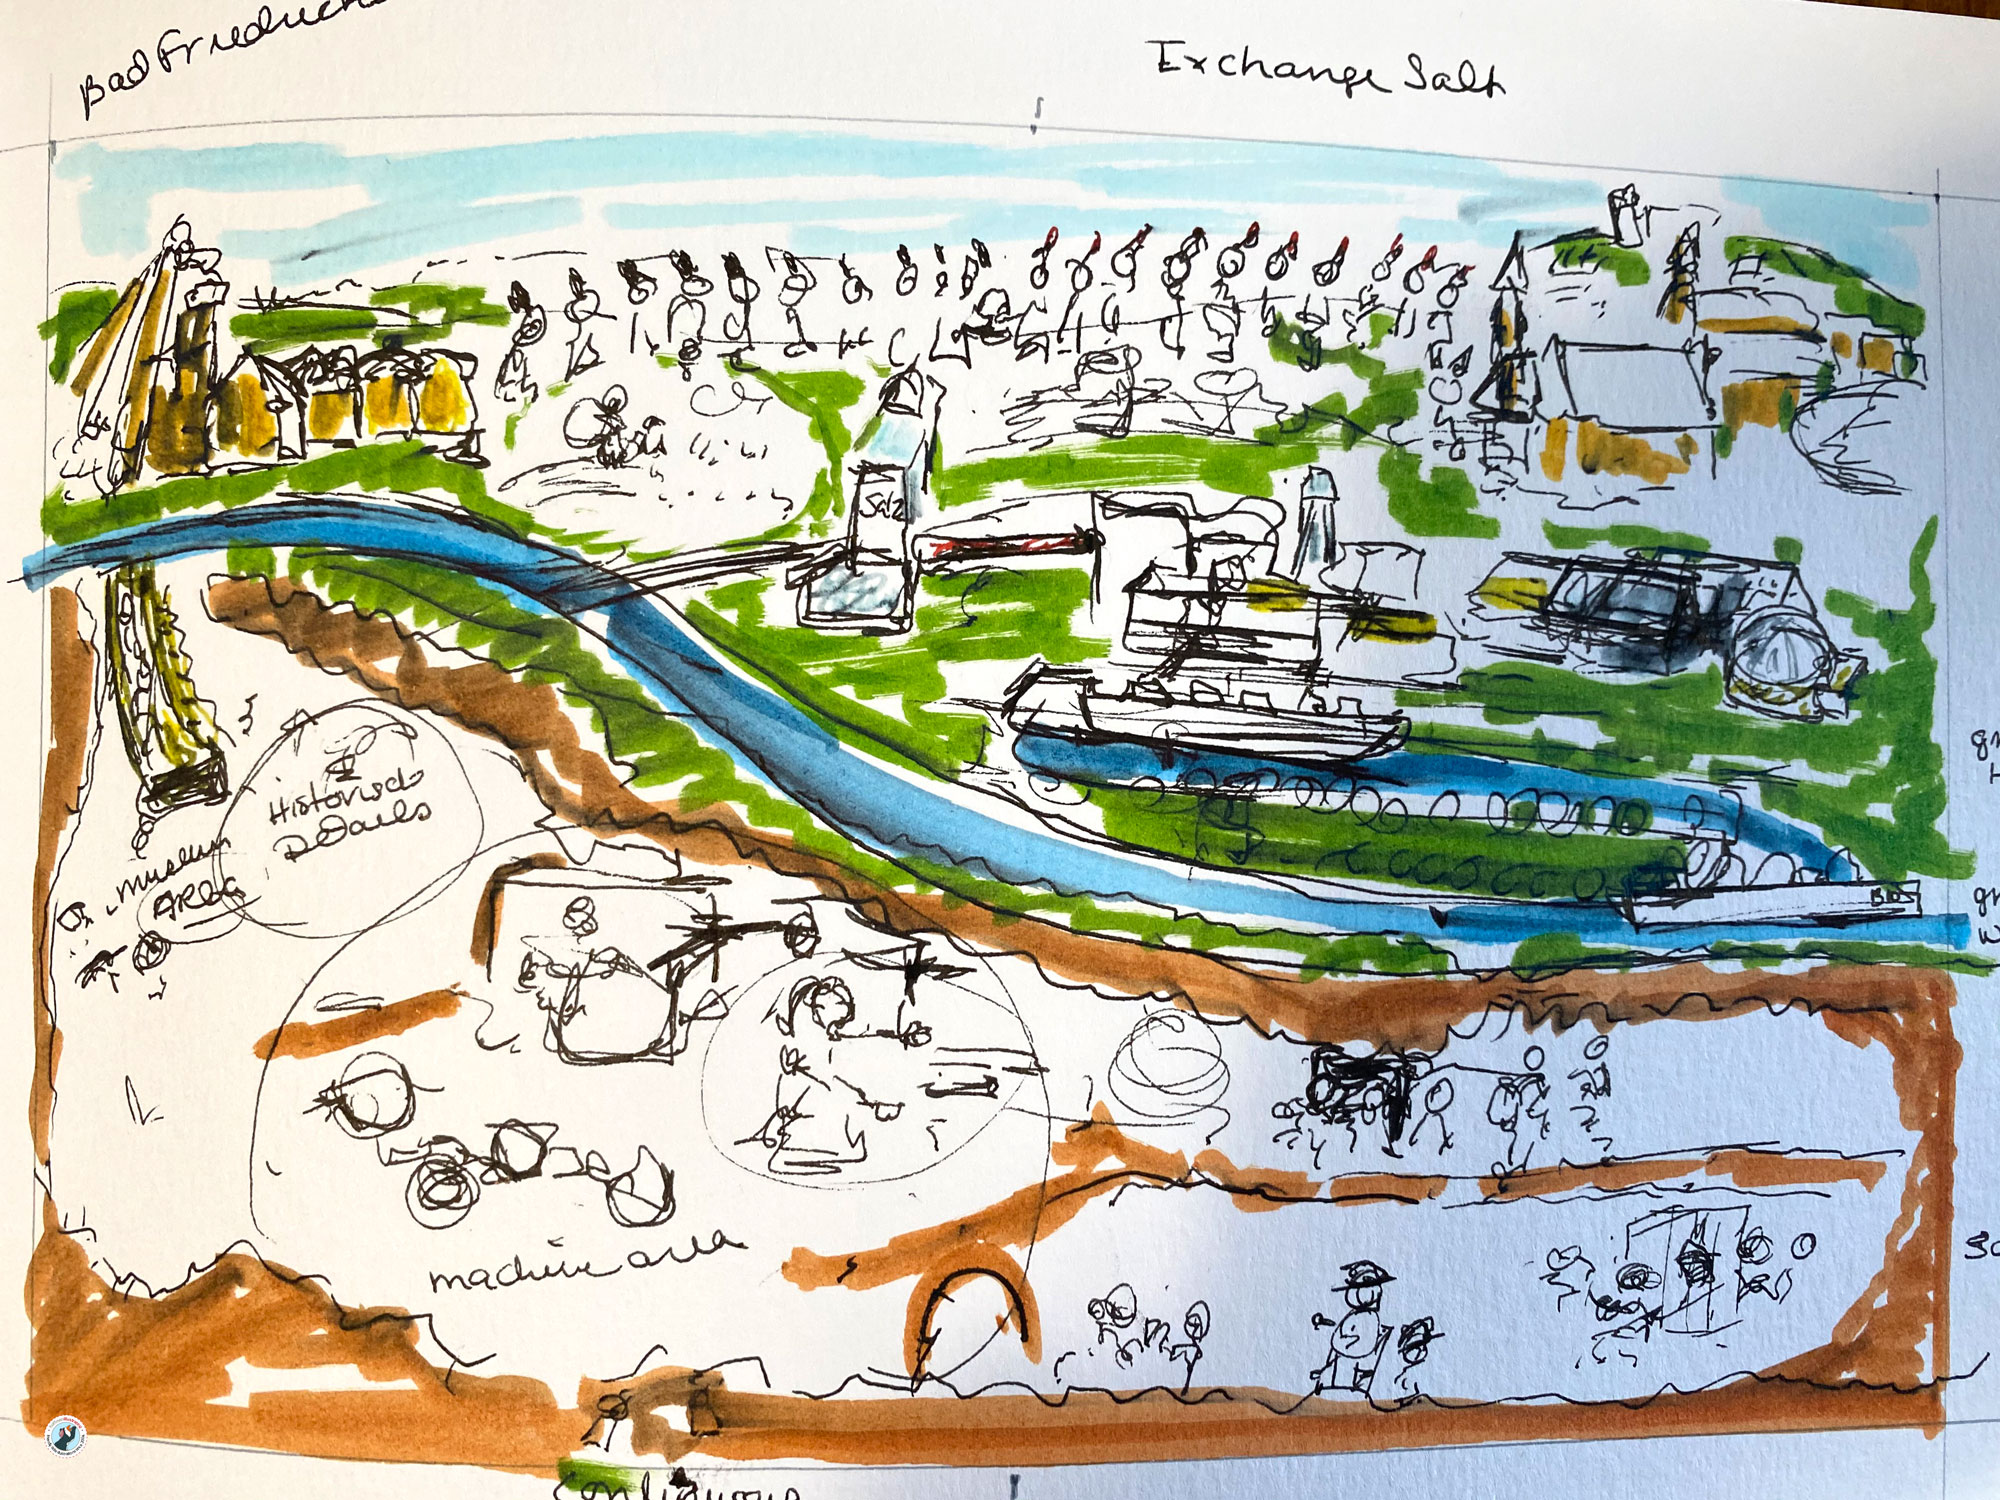 This is the second sketch I made to decide on how the salt mine double page should work. It is a messy layout sketch in marker..